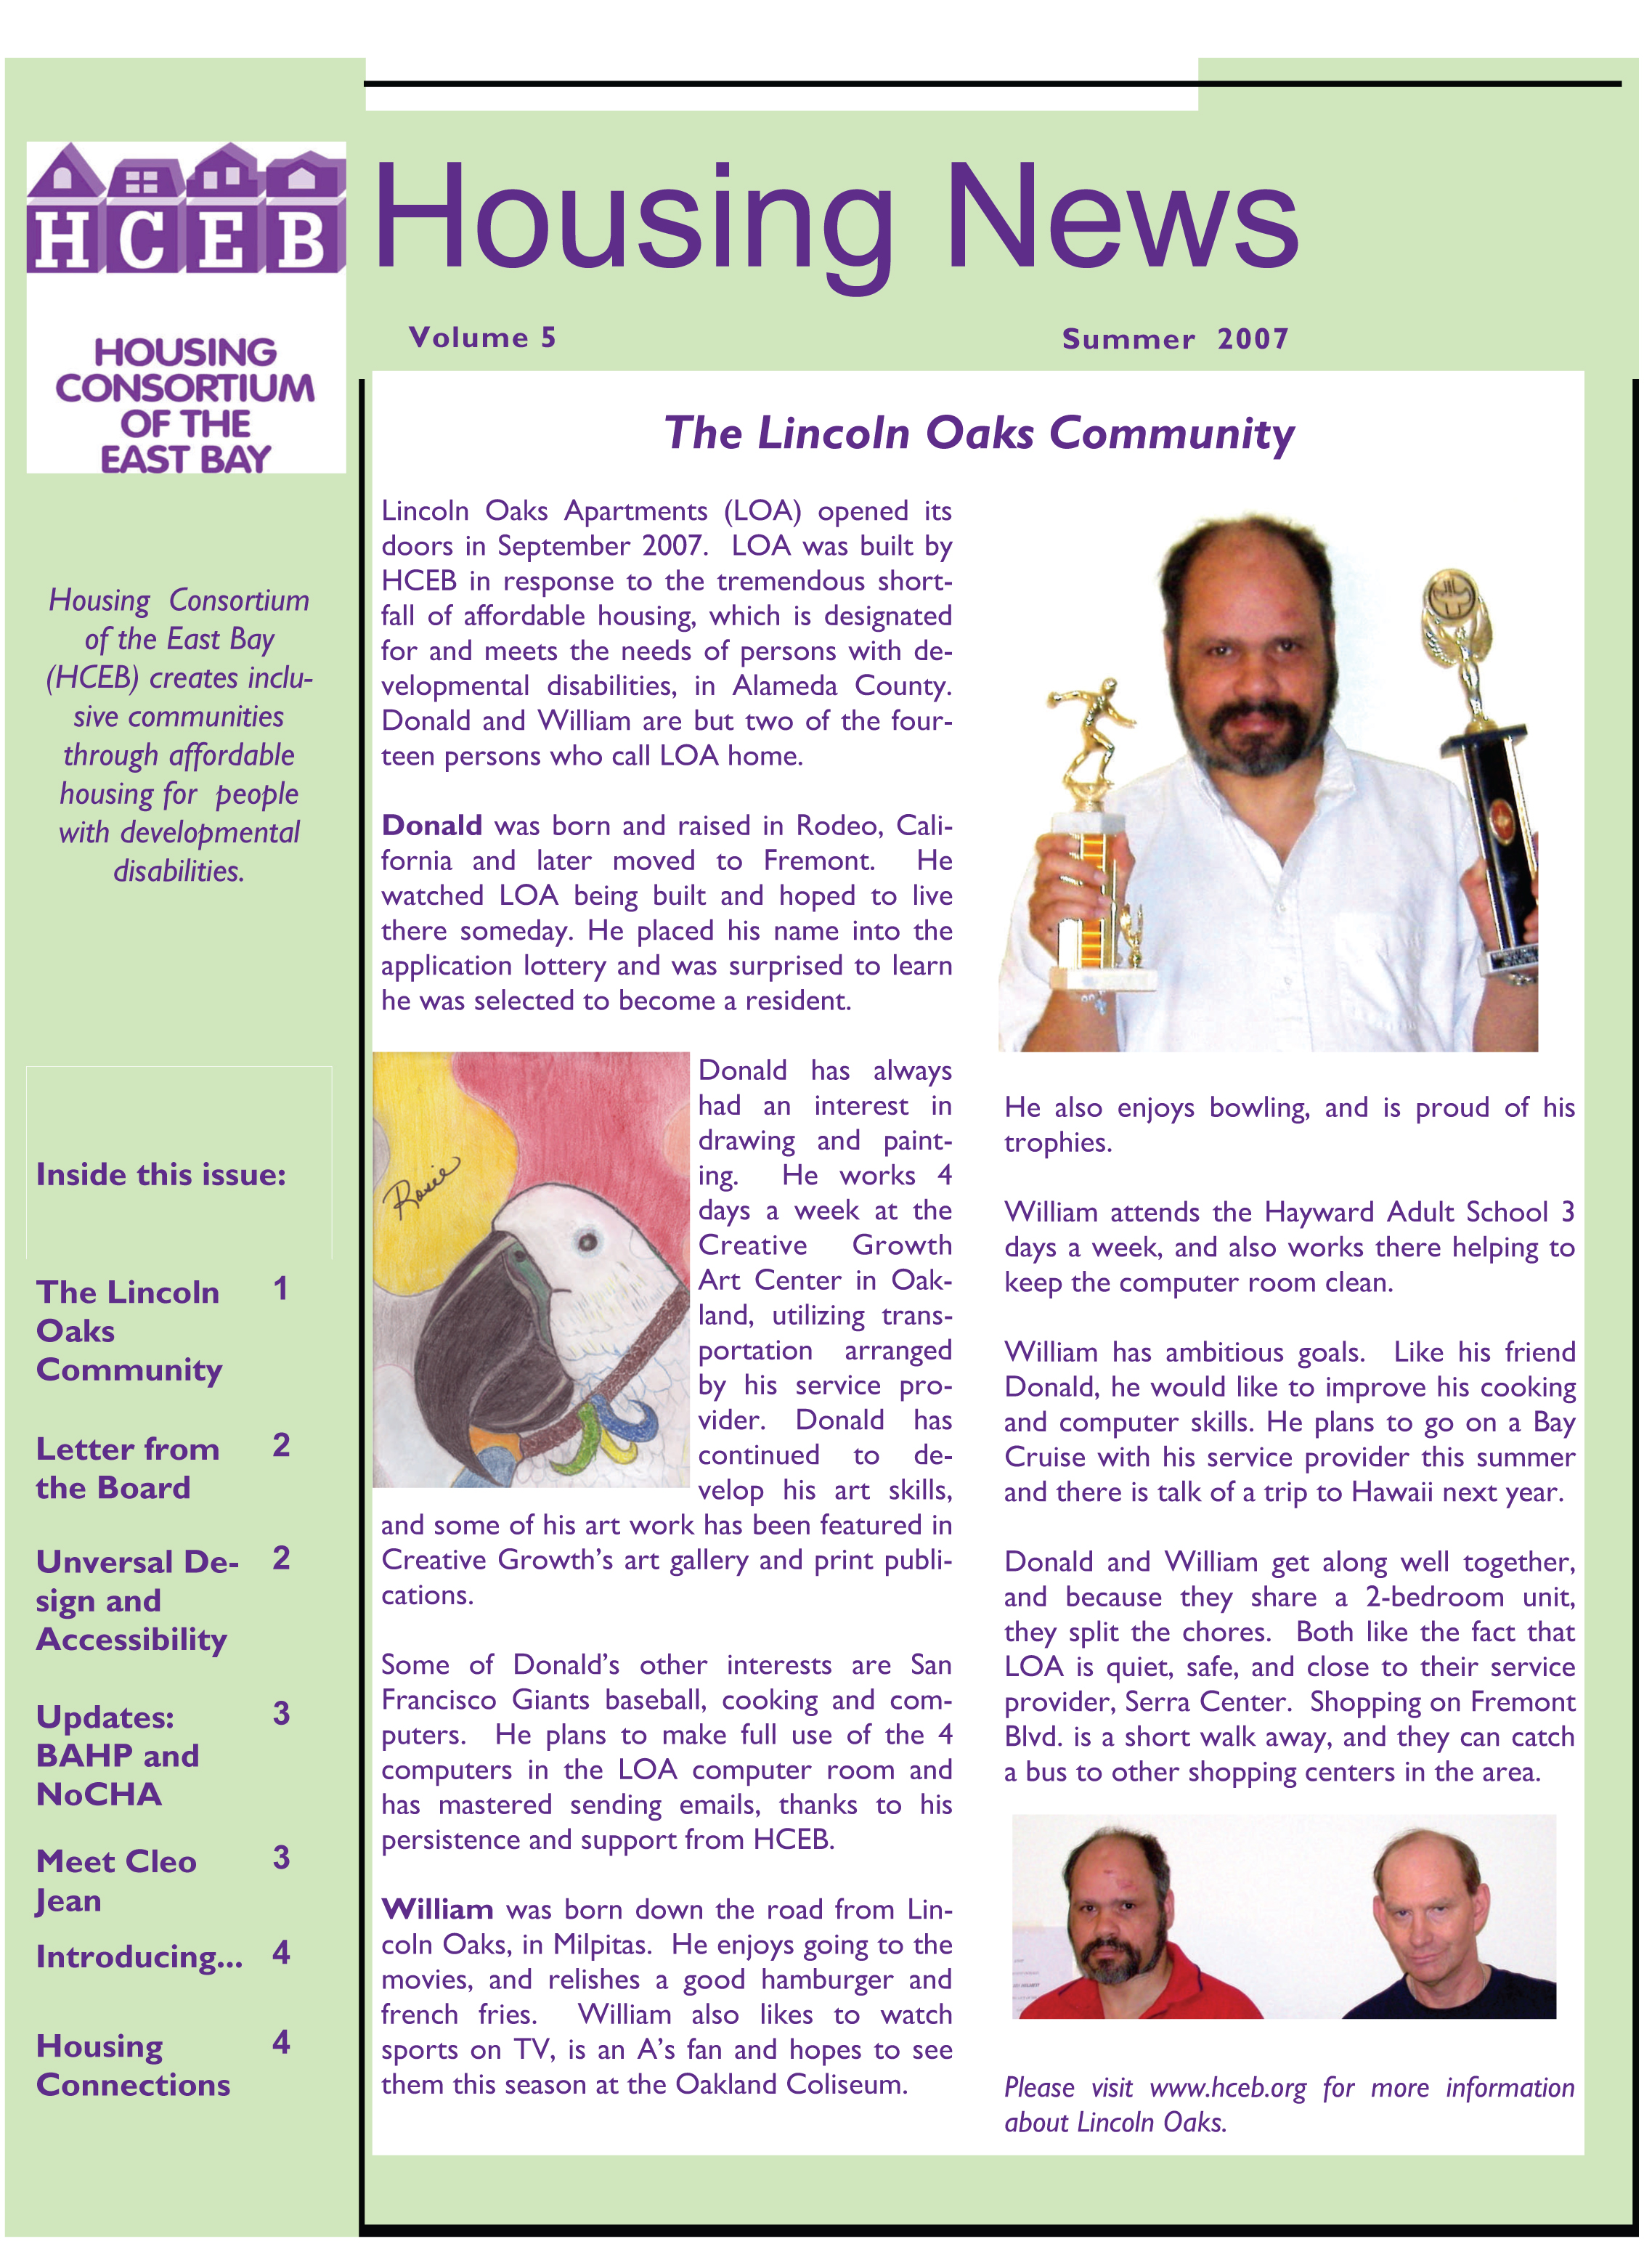 Summer 2007 Newsletter